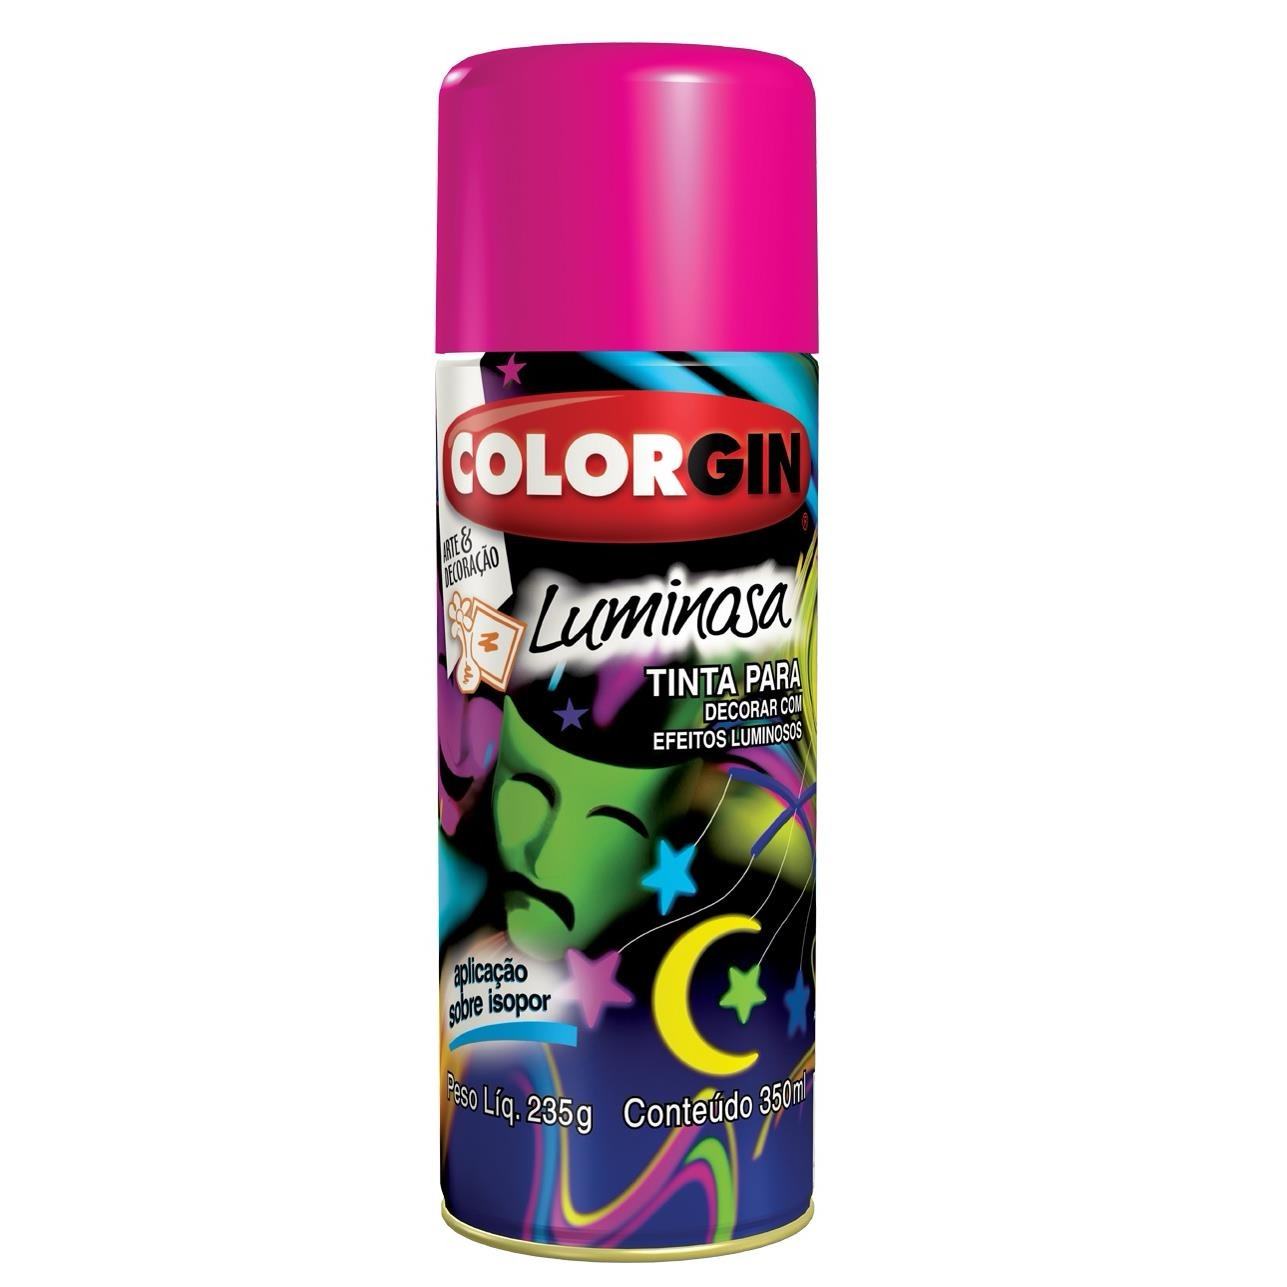 Tinta Spray Fosco Luminosa Interno - Azul - 350ml - Colorgin